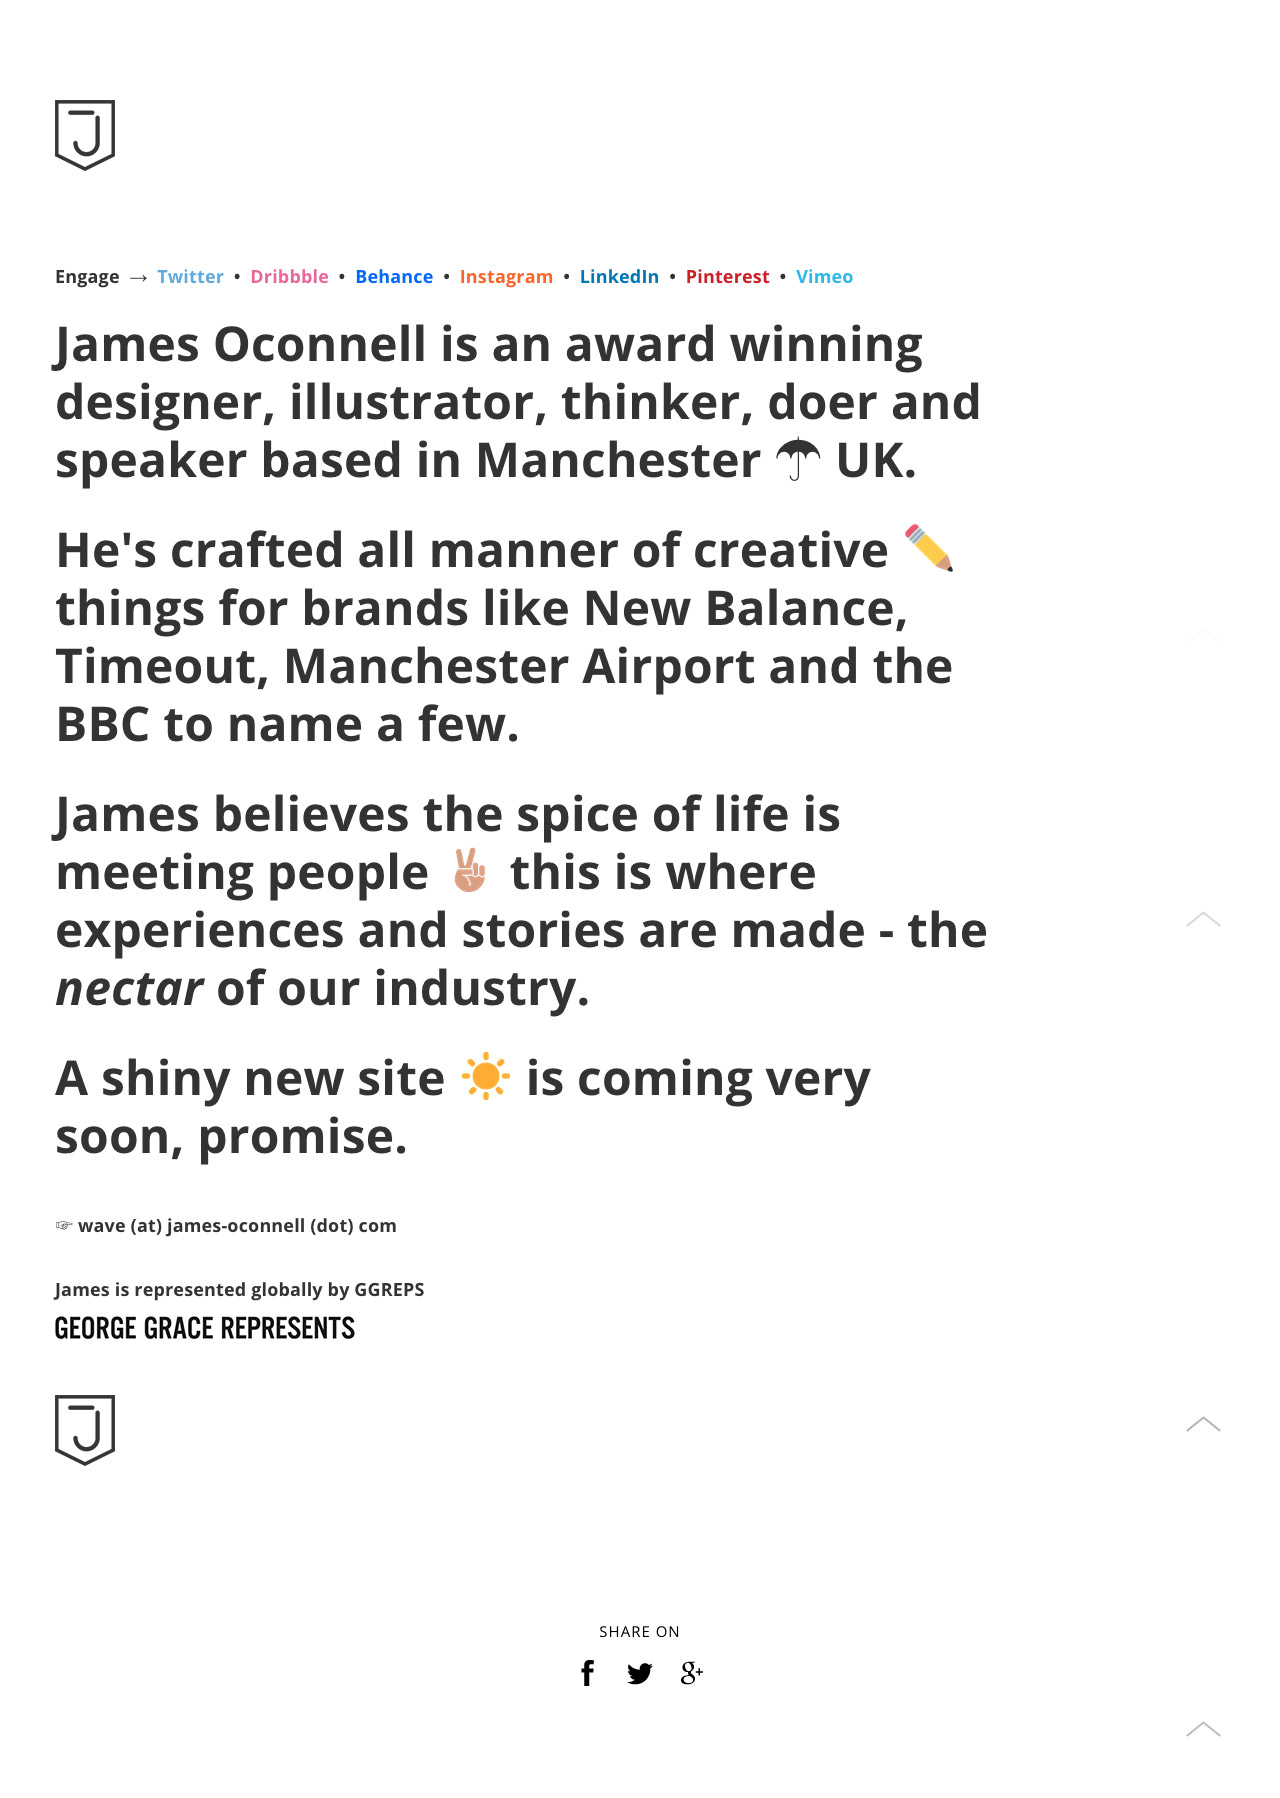 James Oconnell Website Screenshot